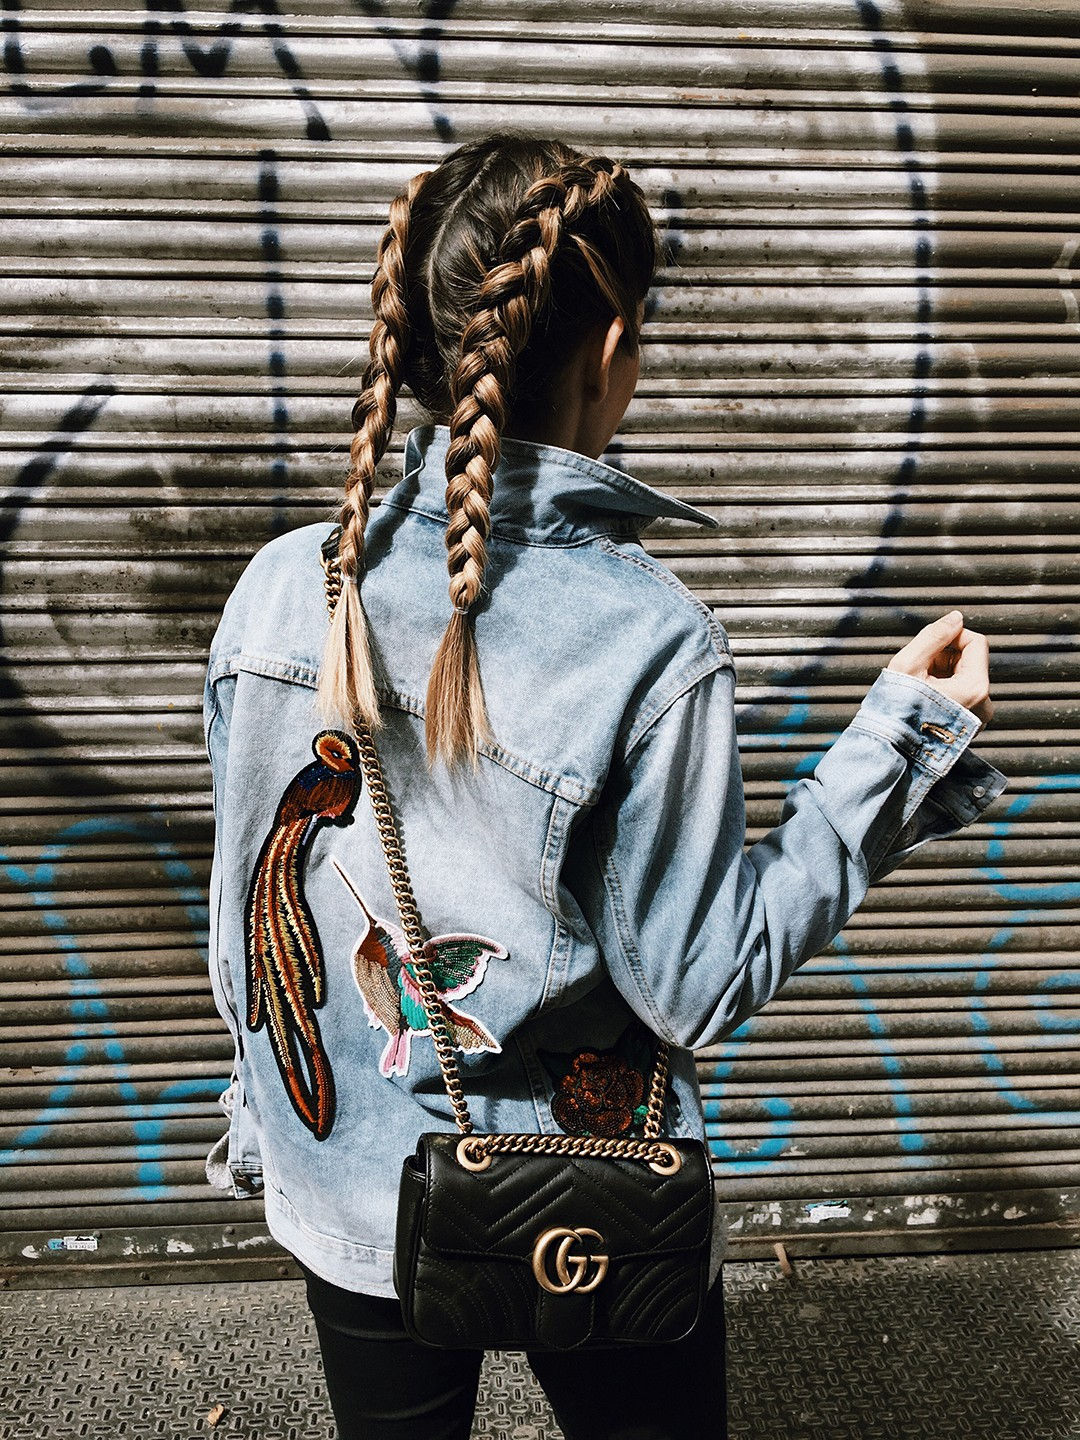 gucci-gg-marmont-leather-shoulder-bag-street-style-trends-2017-Monica-Sors